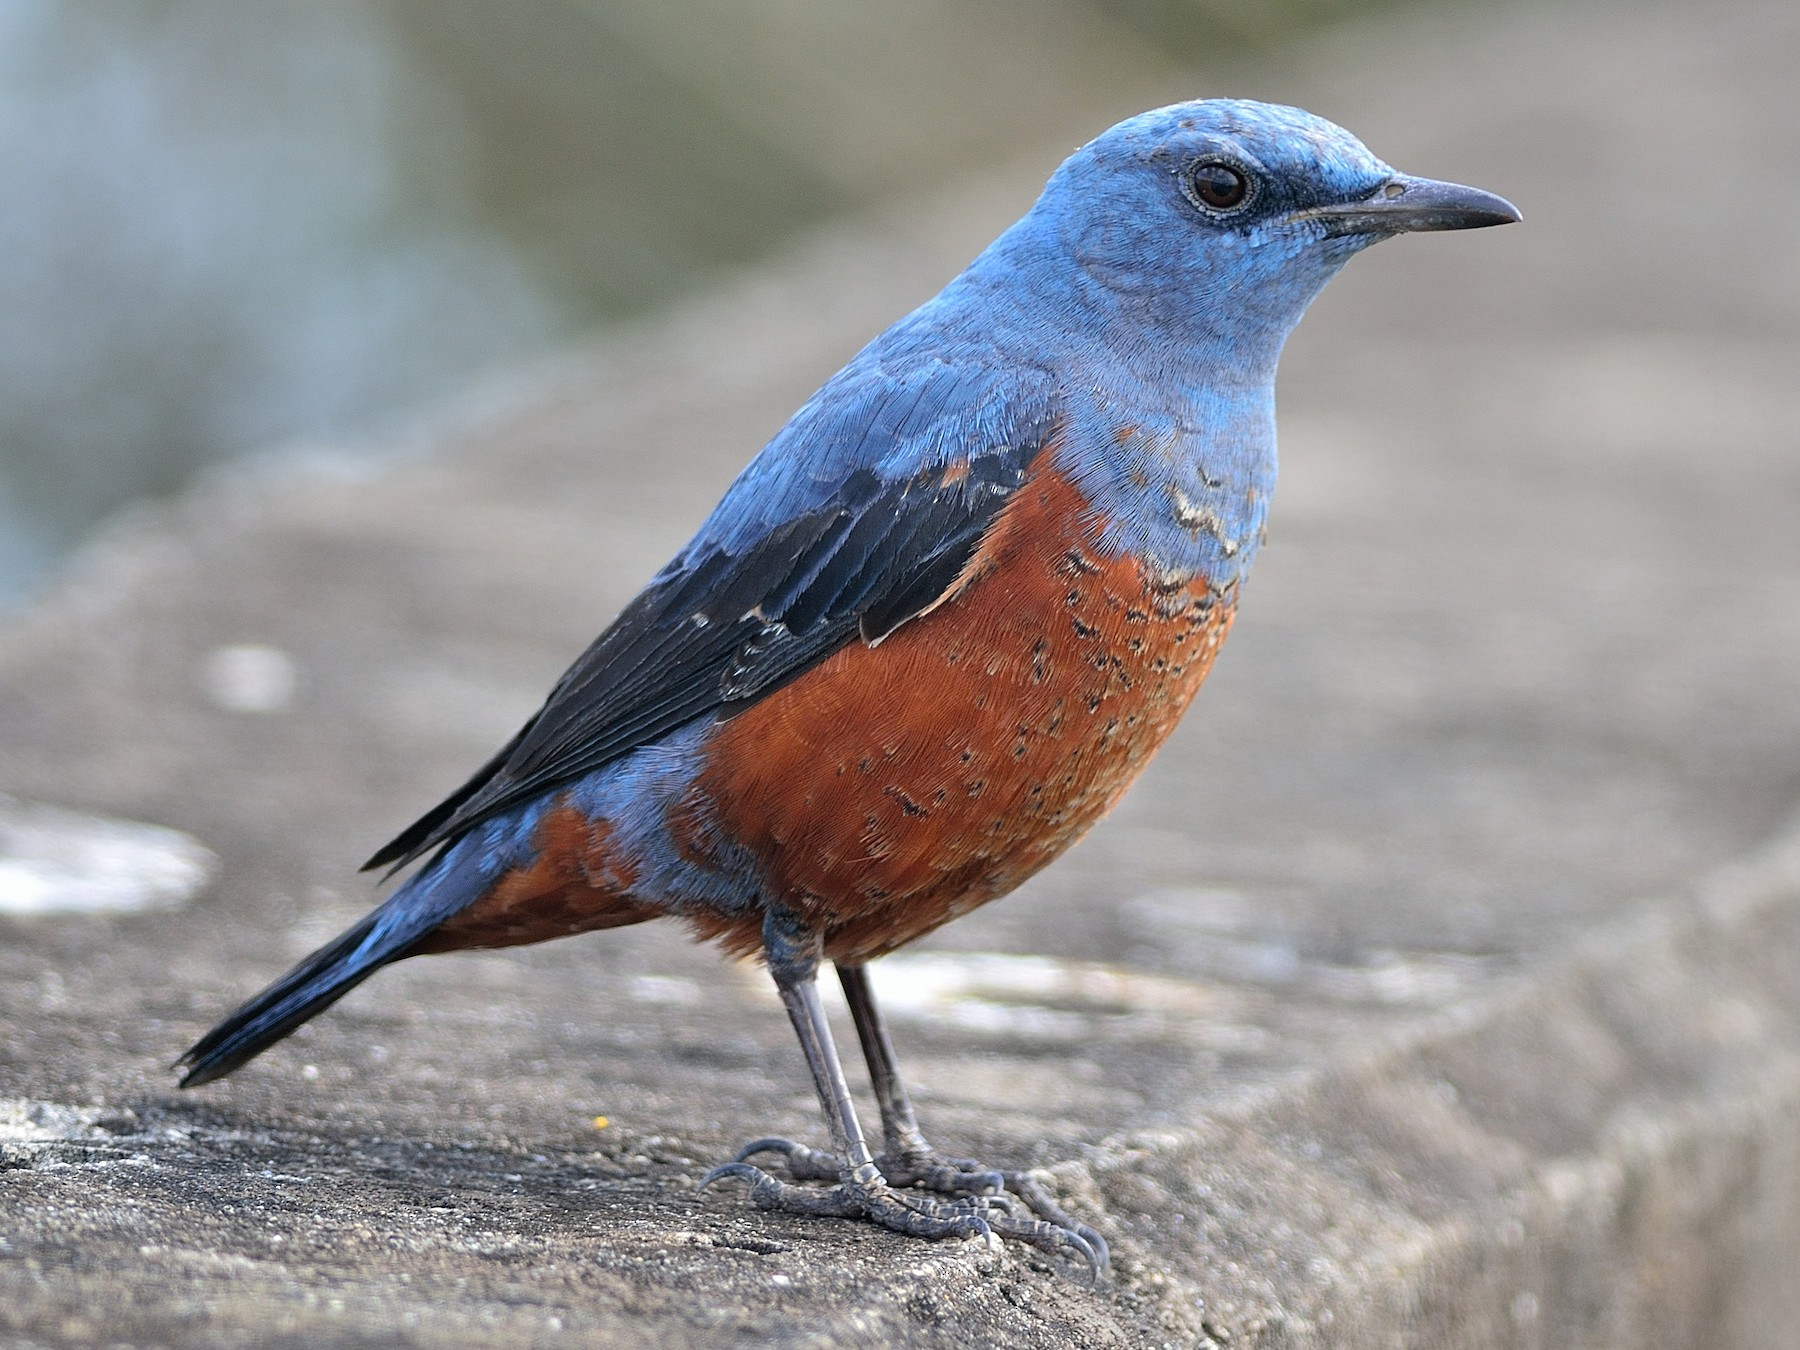 Blue Rock-Thrush - Wbird Tsai